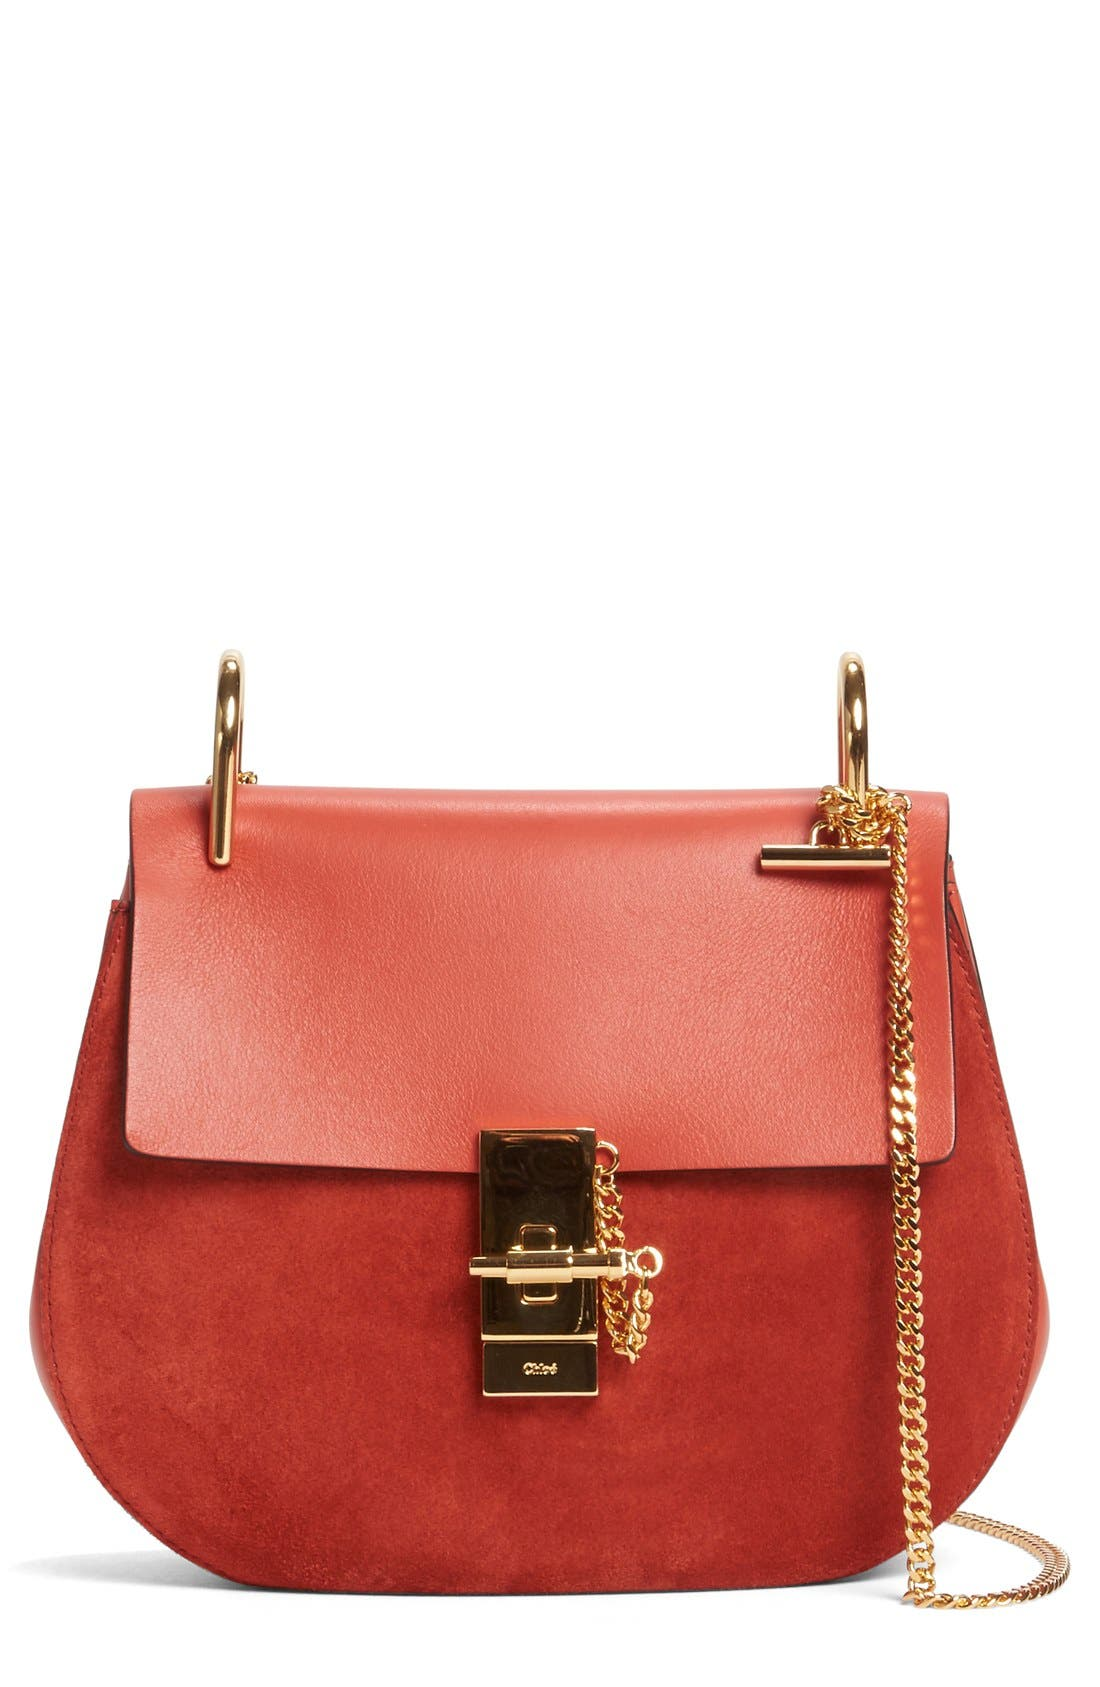 CHLOÉ 'Mini Drew' Leather Crossbody Bag